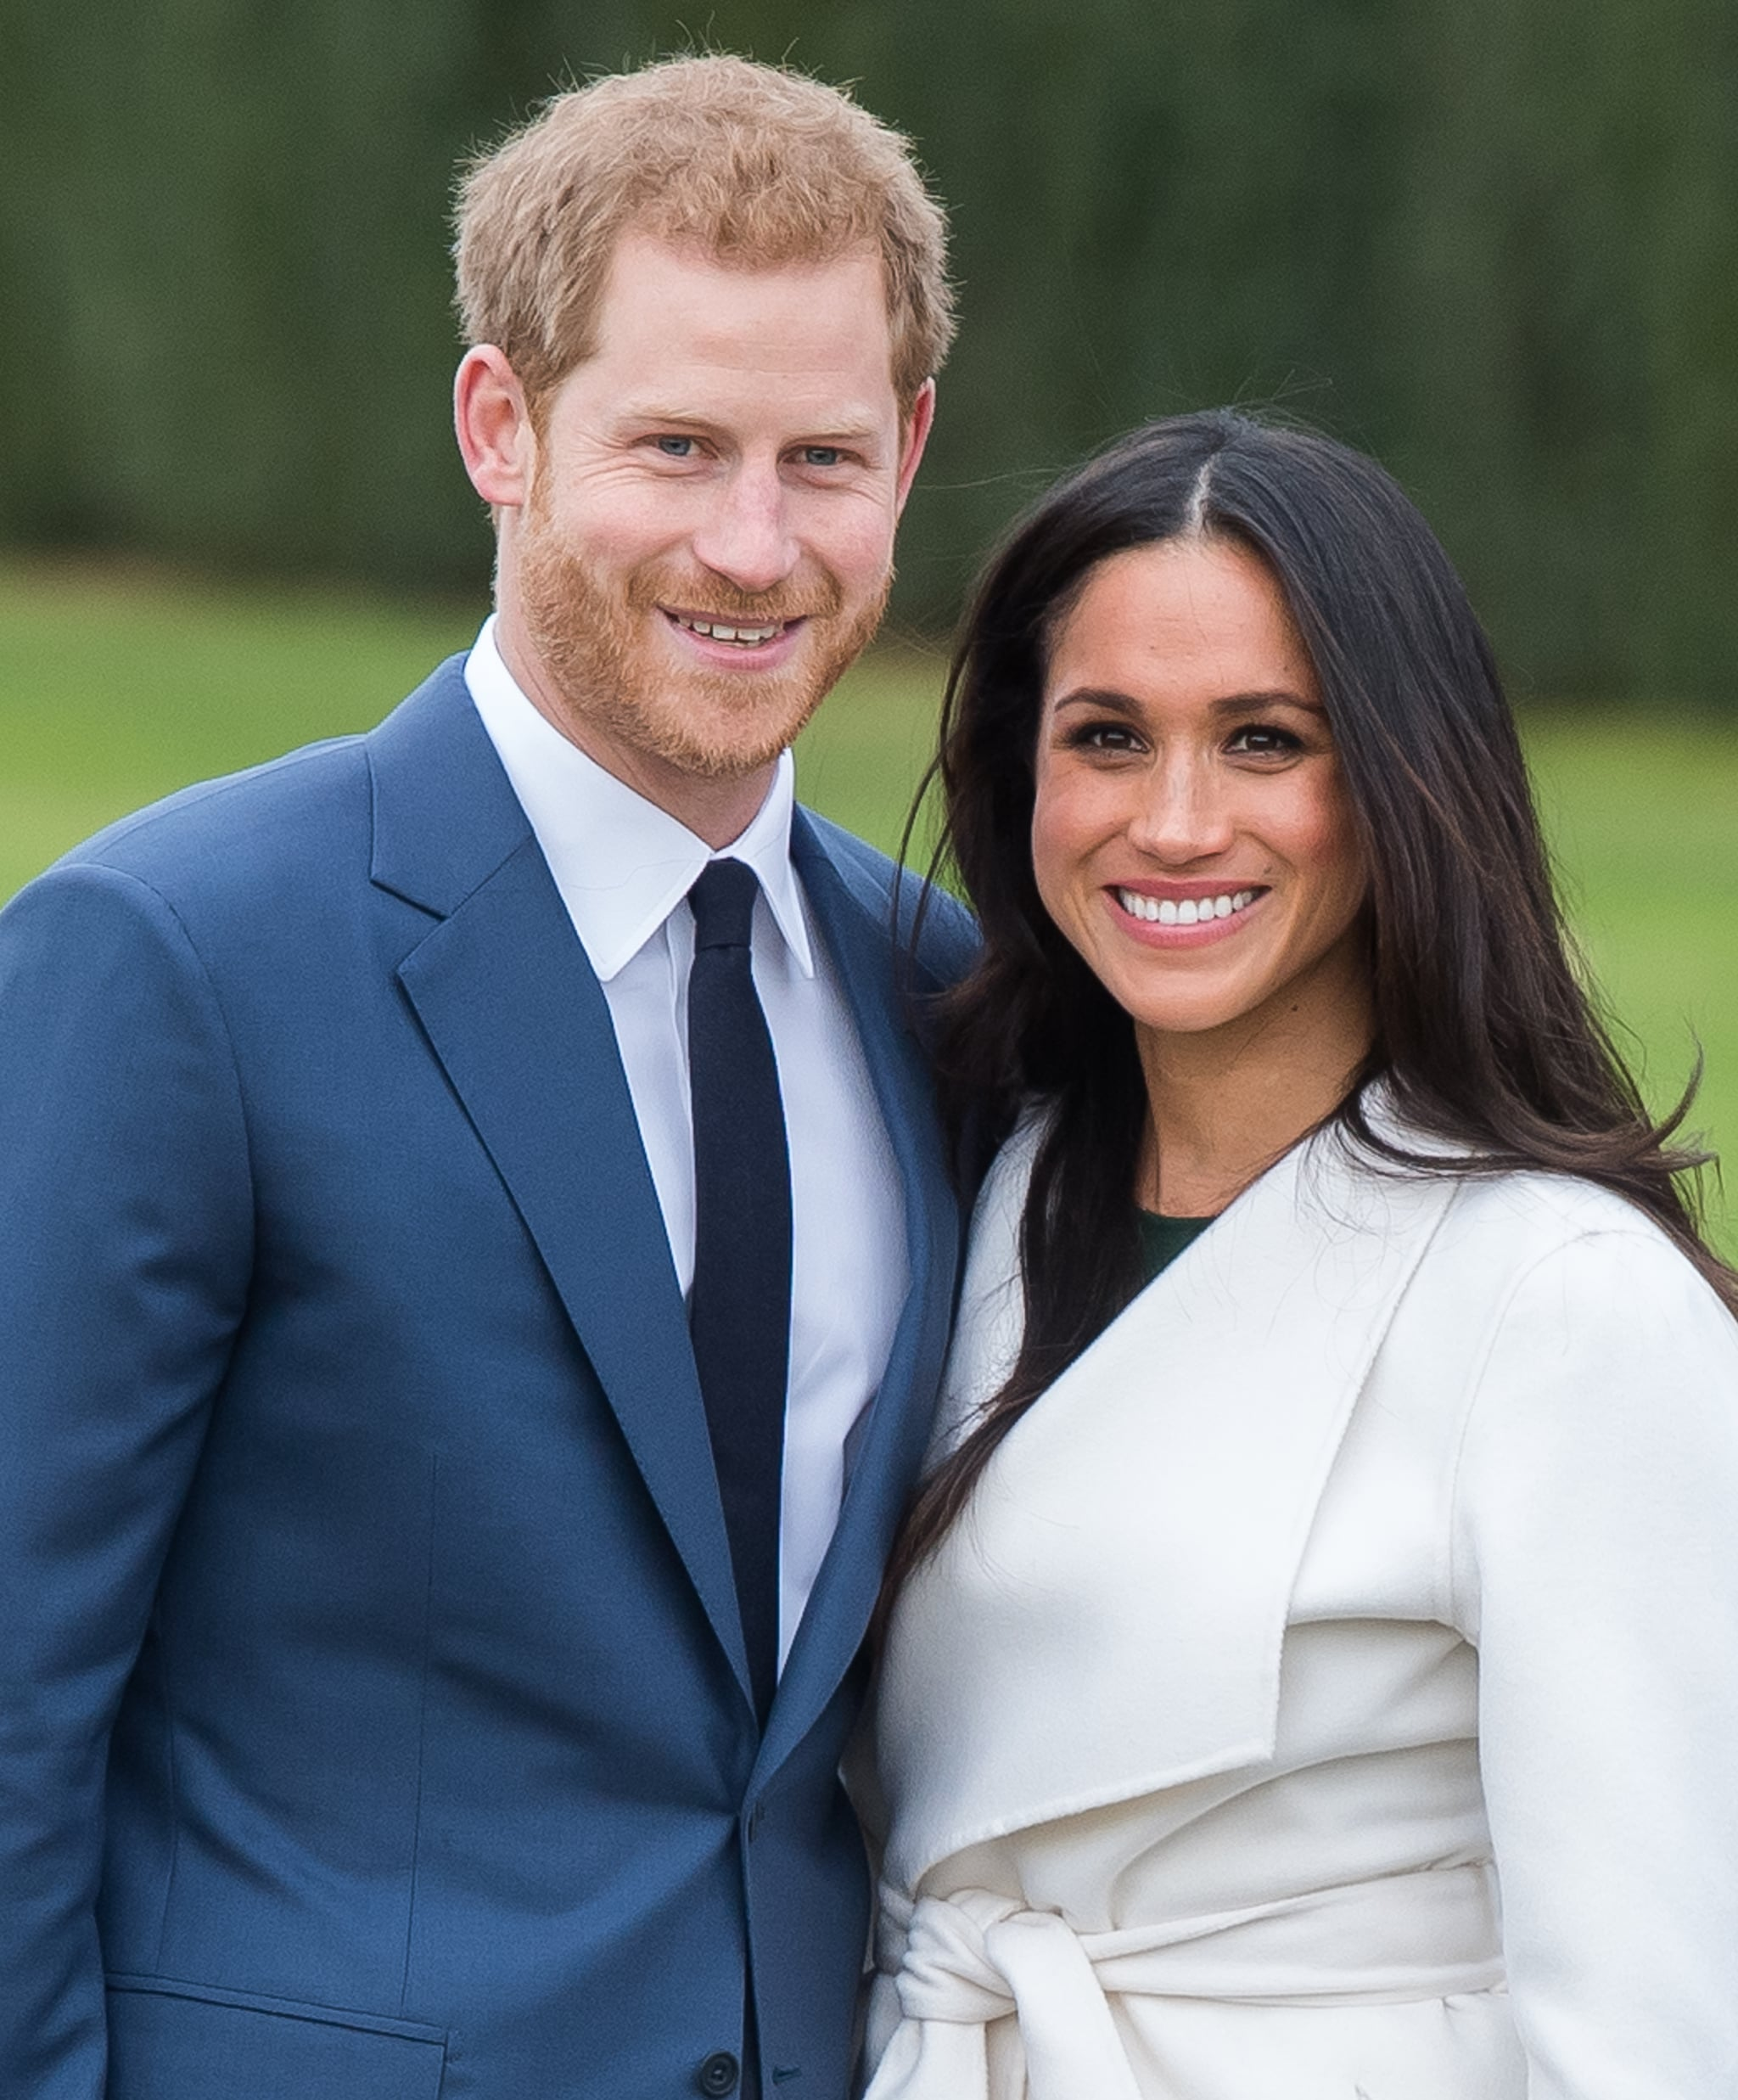 Will Meghan Markle Become A British Citizen?